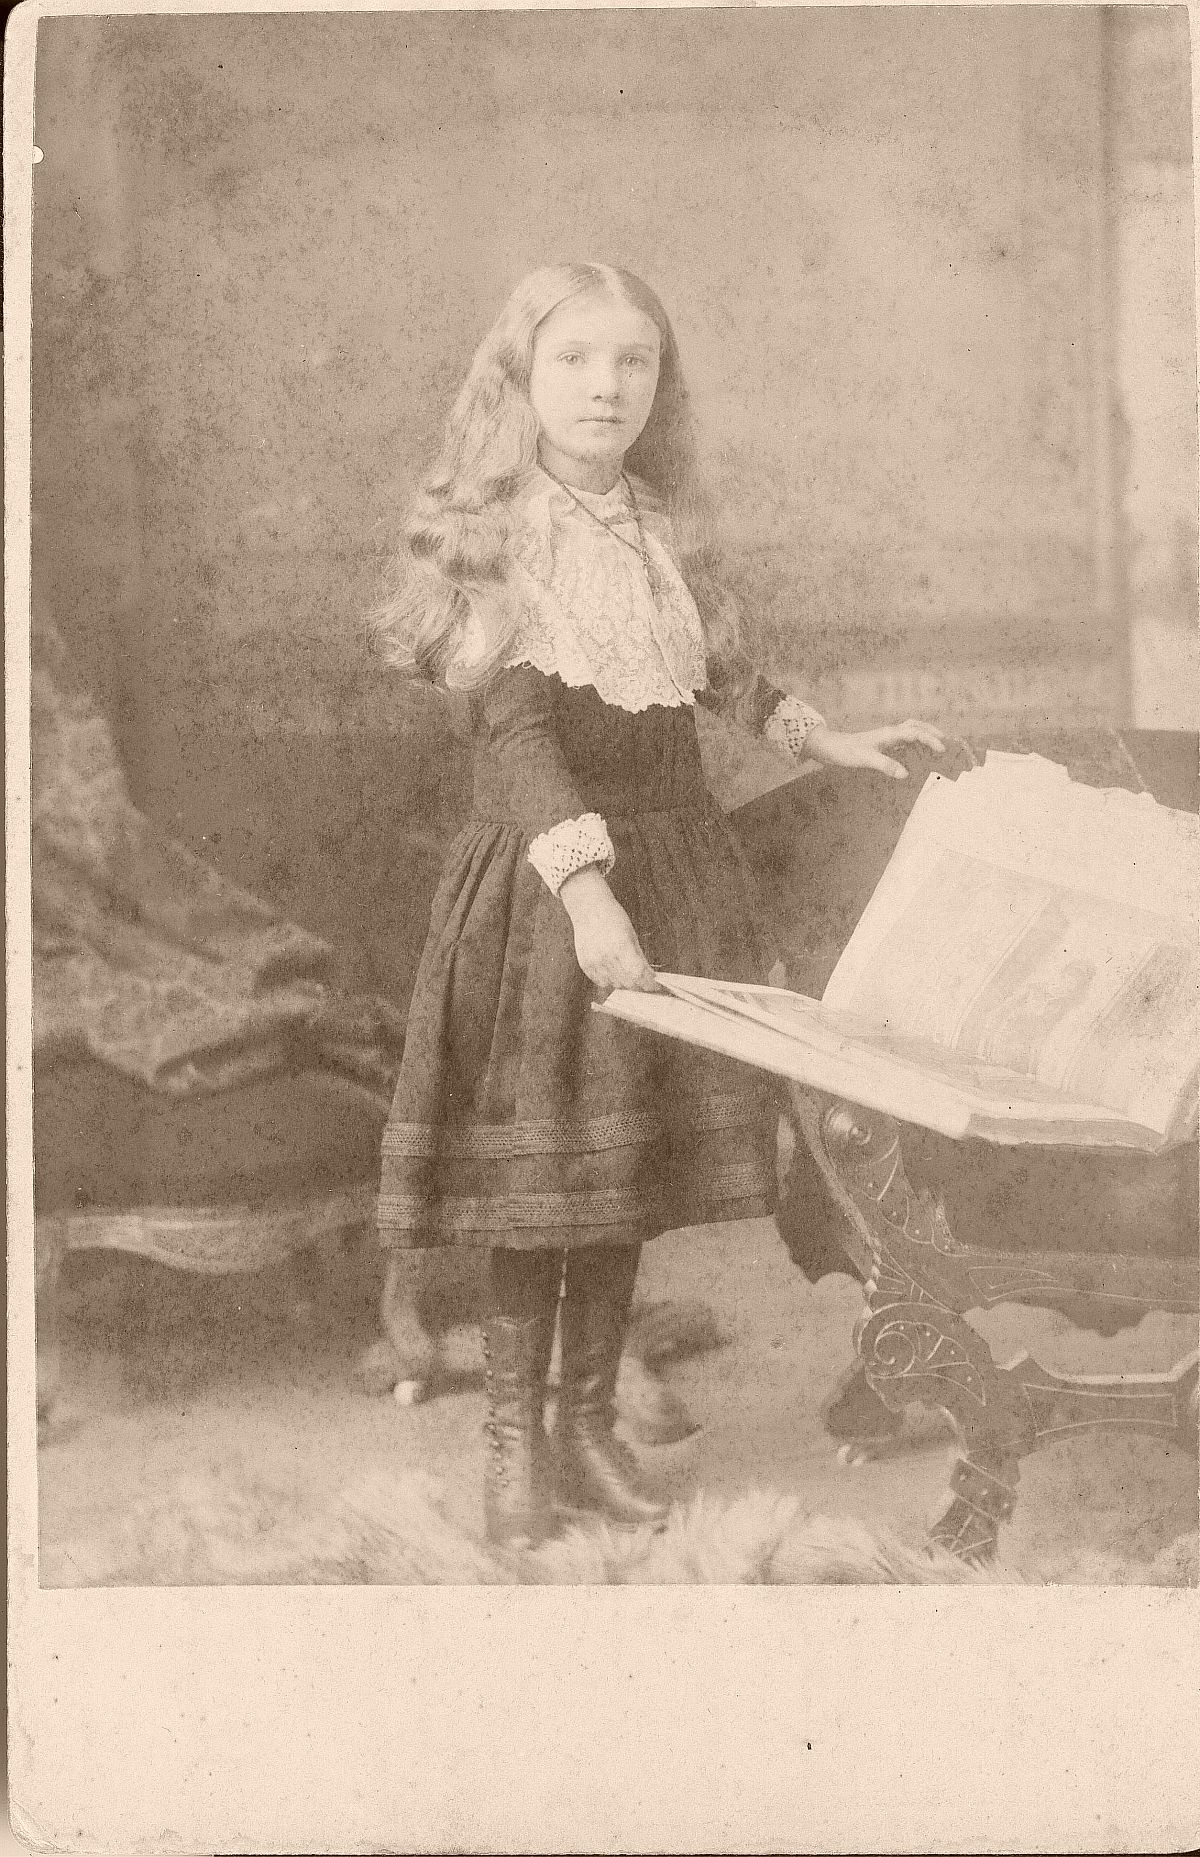 cabinet-cards-1870s-to-1880s-vintage-19th-century-victorian-era-18